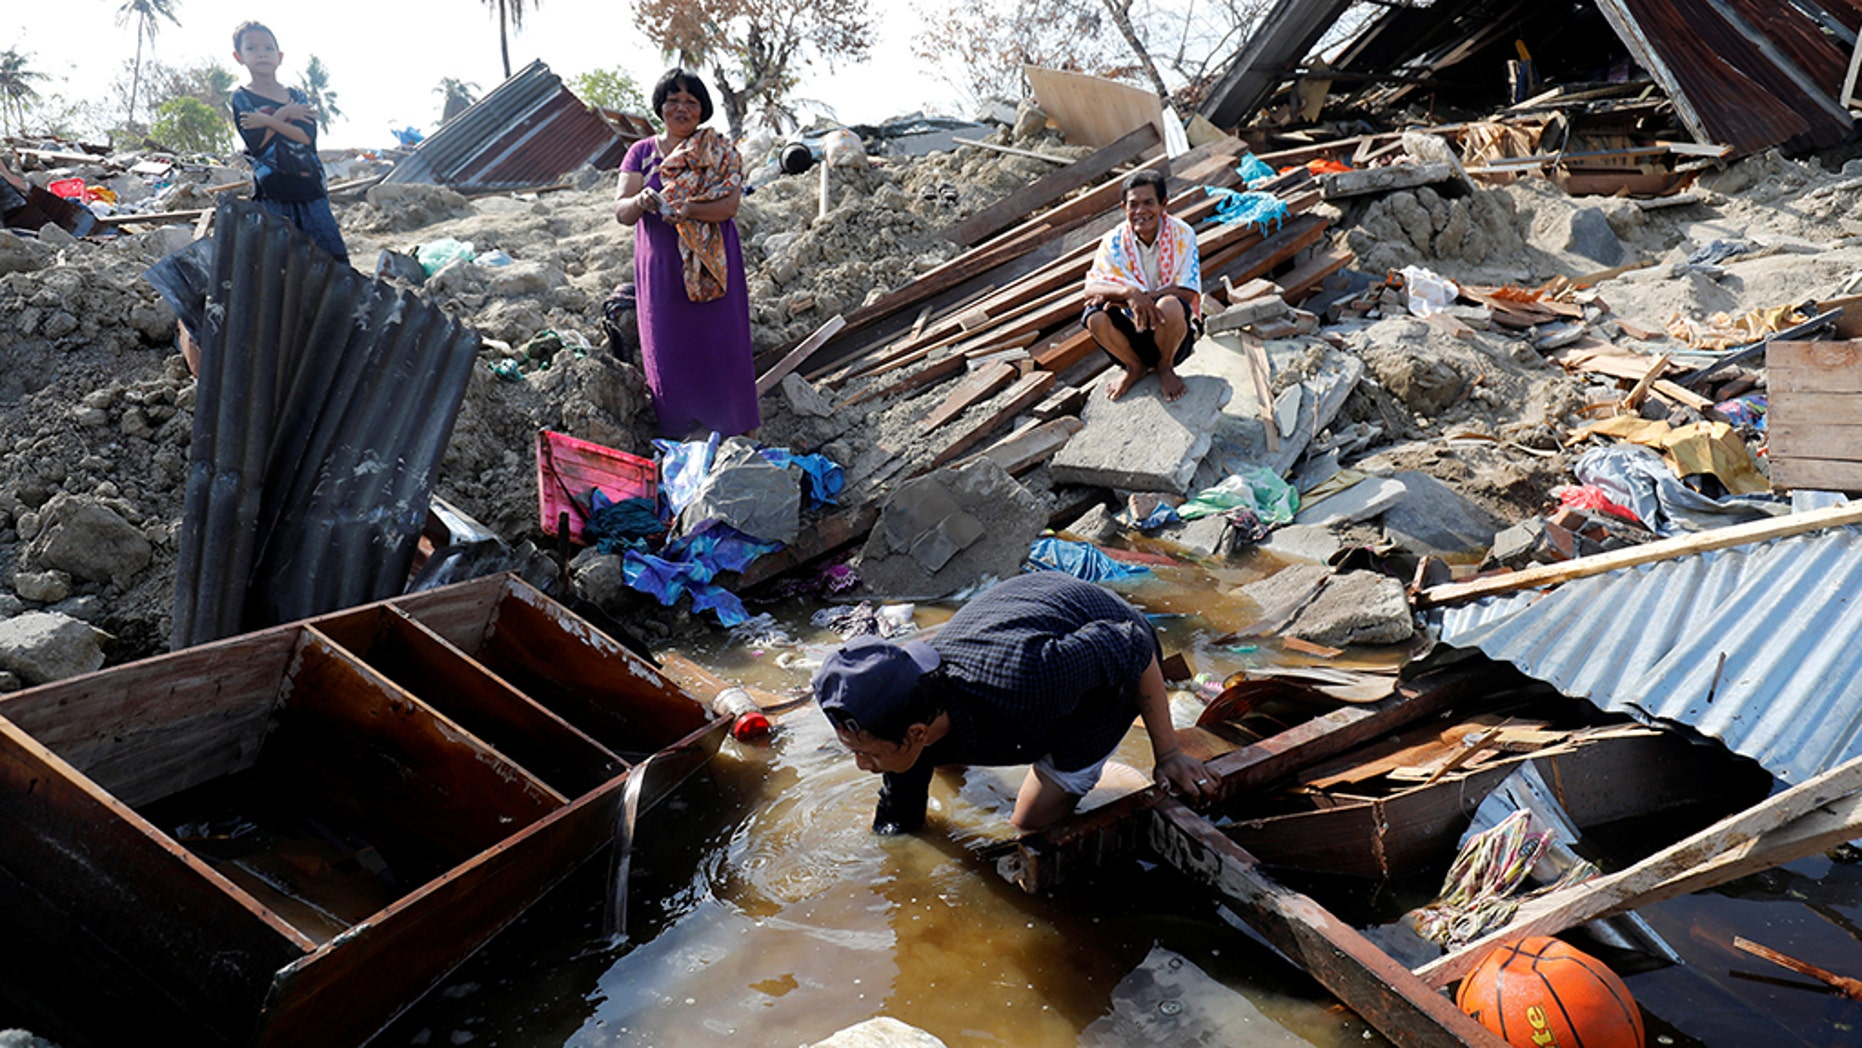 A family searches for their belongings in the remains of their home in the Petobo neighborhood, which was hit by an earthquake, in Palu, Central Sulawesi, Indonesia, Oct. 10, 2018.